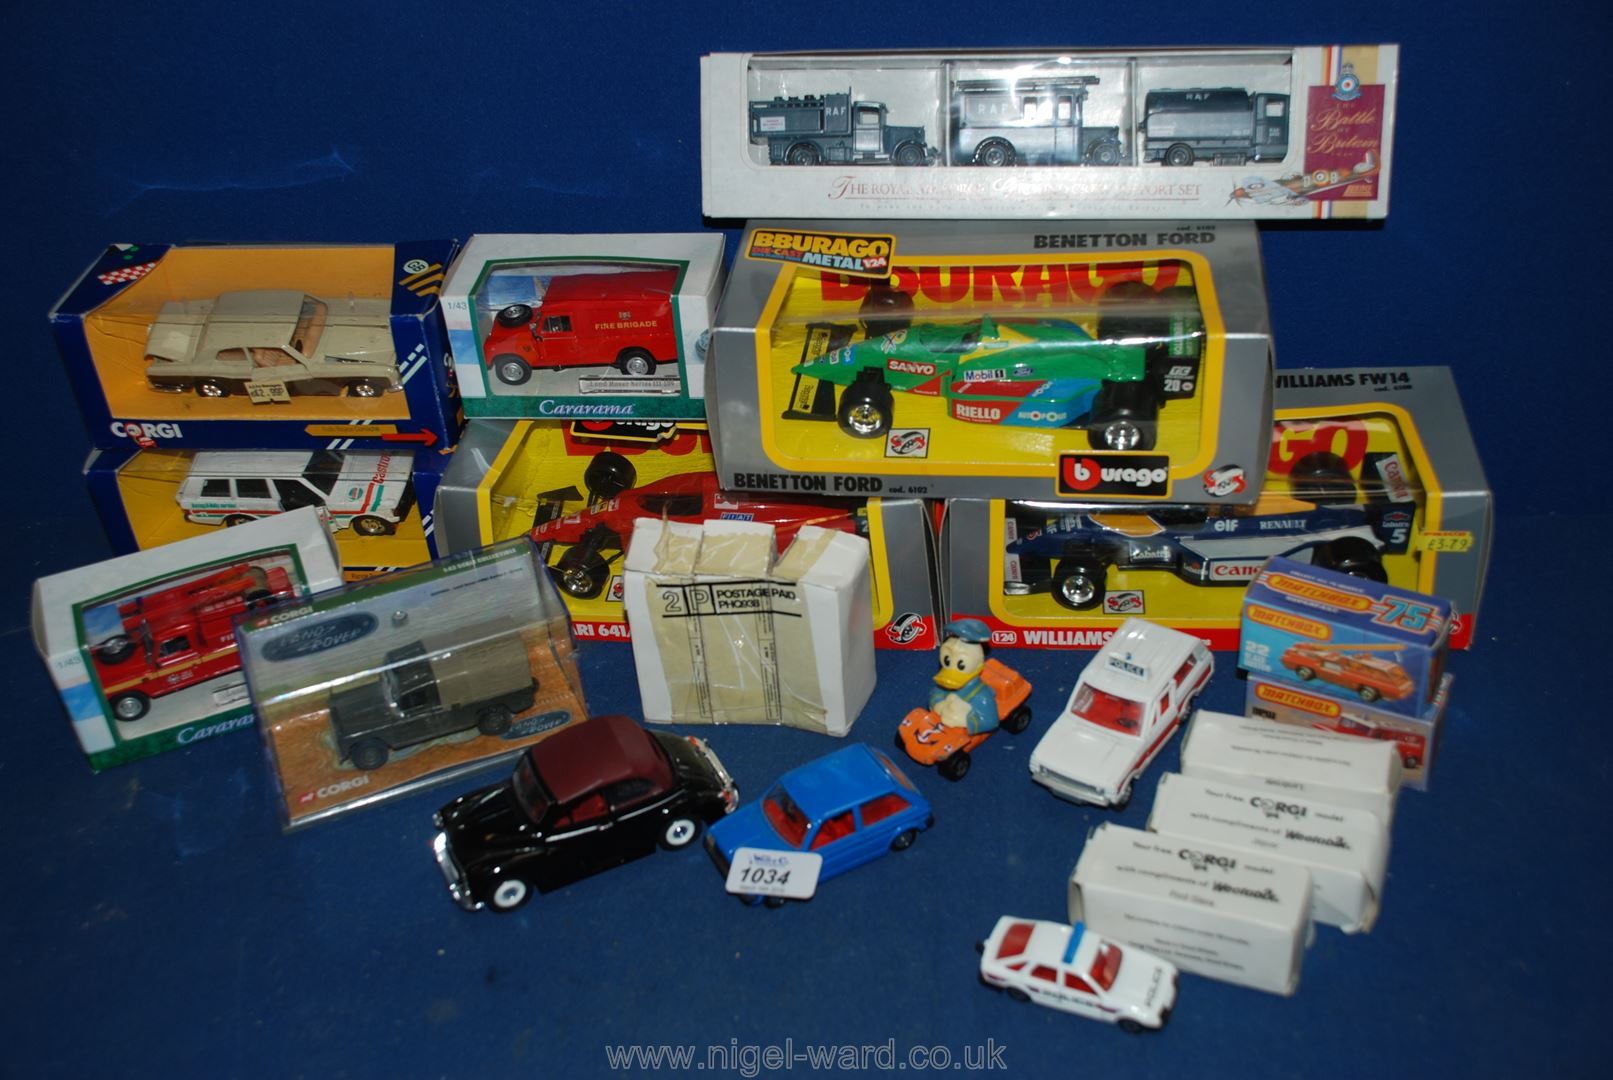 Lot 1034 - A quantity of Burago and Matchbox vehicles including; 'The Raf', Williams FW14, Bennetton Ford,